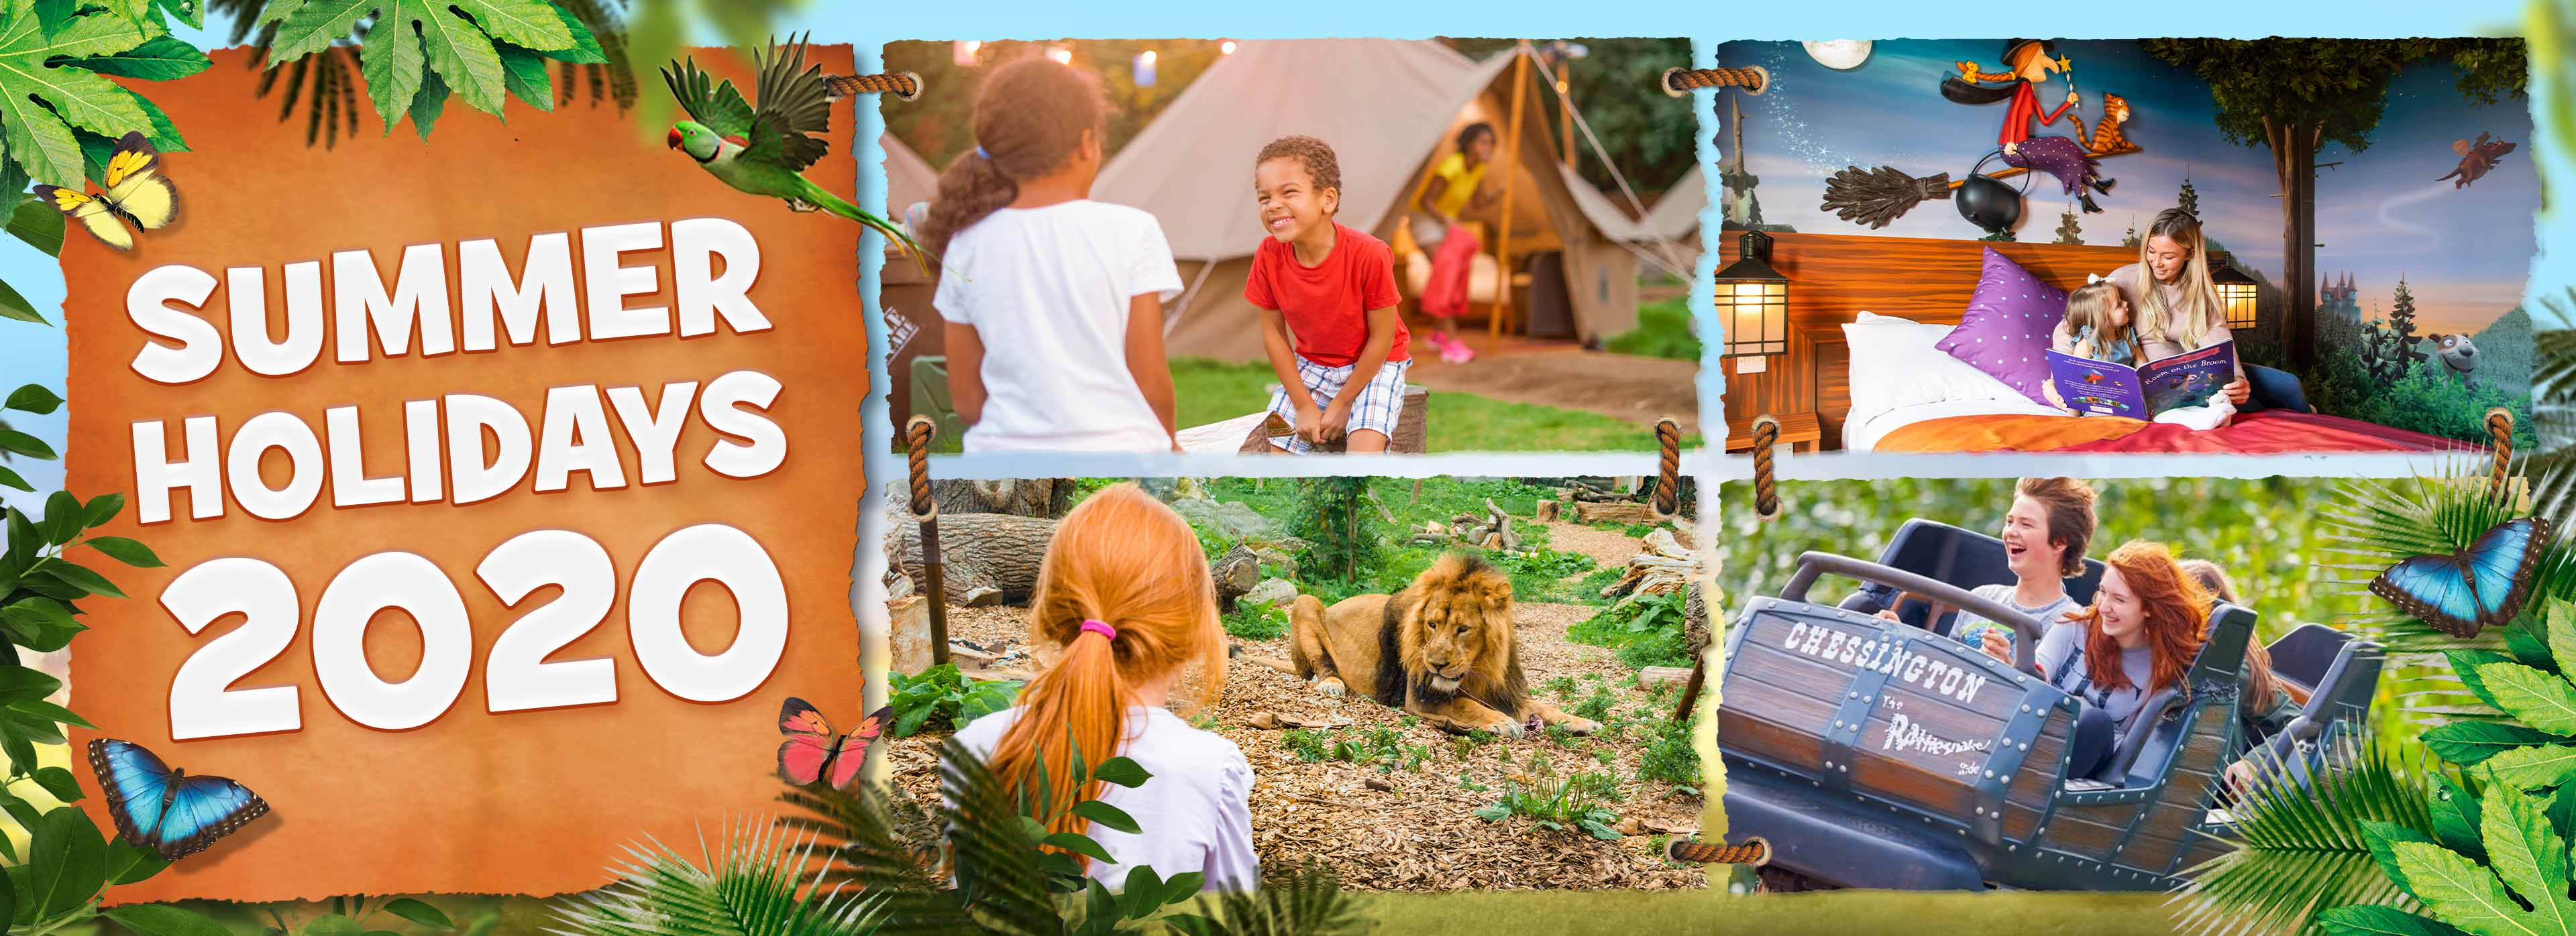 Summer Holidays at Chessington World of Adventures Resort